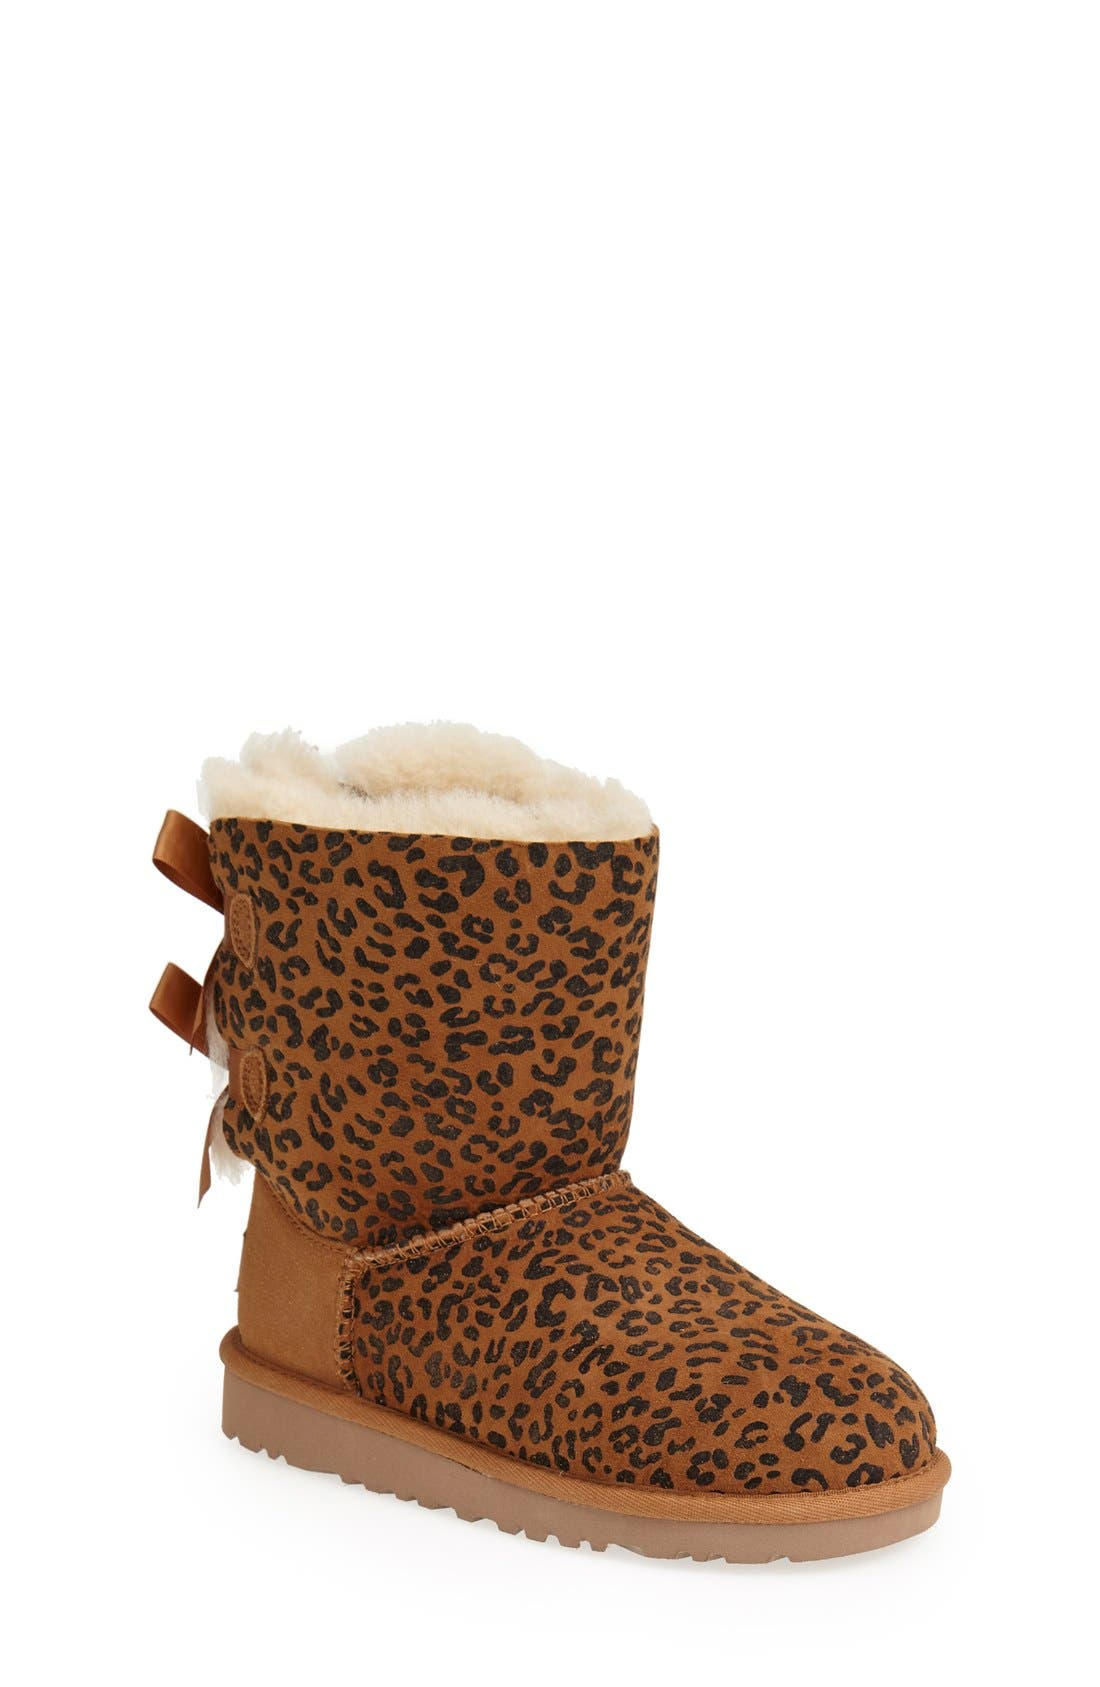 Alternate Image 1 Selected - UGG® Australia 'Bailey Bow' Boot (Walker, Toddler, Little Kid & Big Kid)